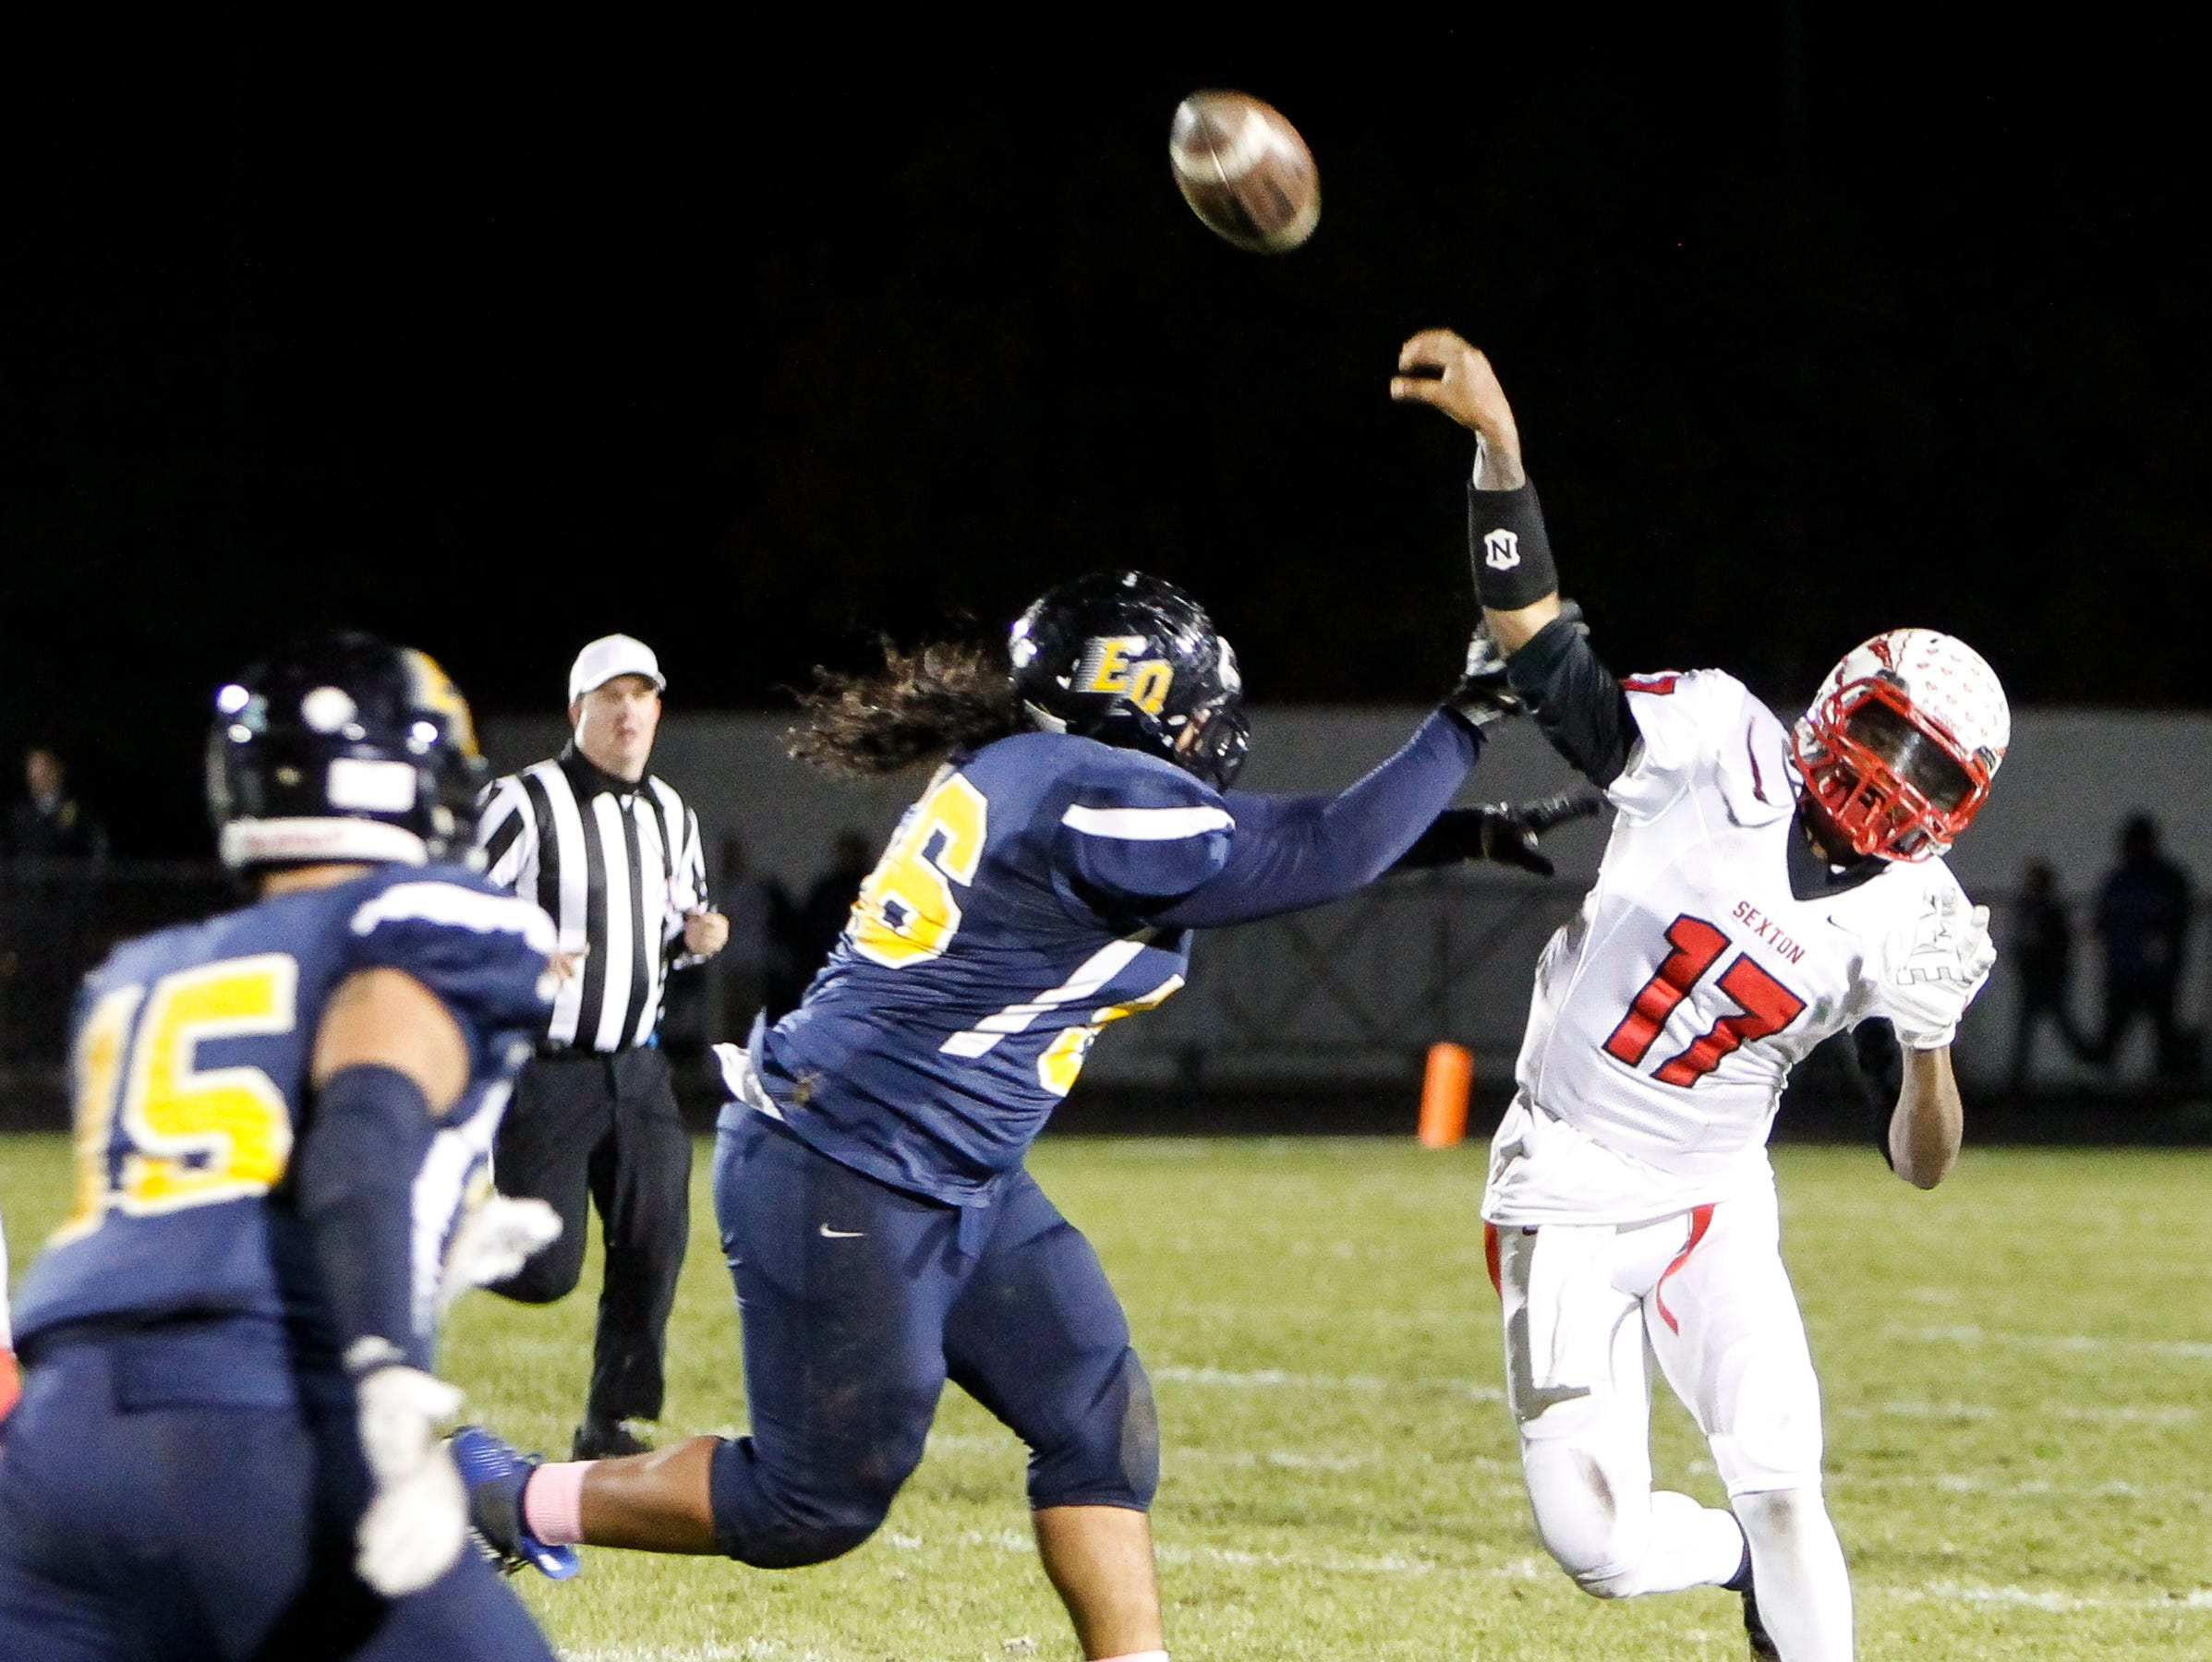 Sexton QB Marcus Alston throws against Lansing Eastern Friday, October 21, 2016 at Sexton. The pass was intercepted.